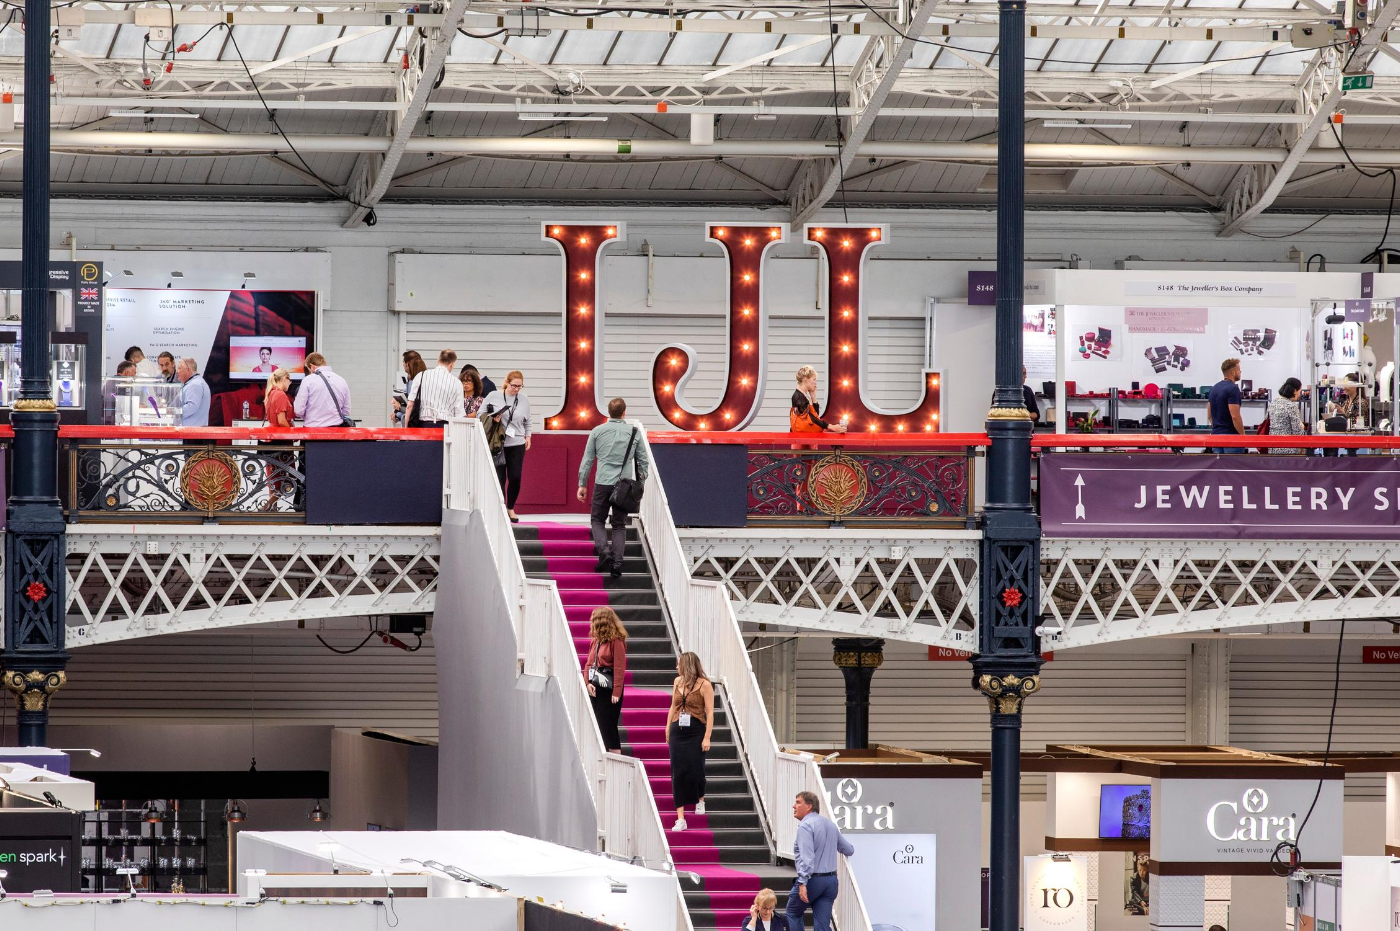 A Statement from Reed Exhibitions – Organisers of International Jewellery London (IJL):